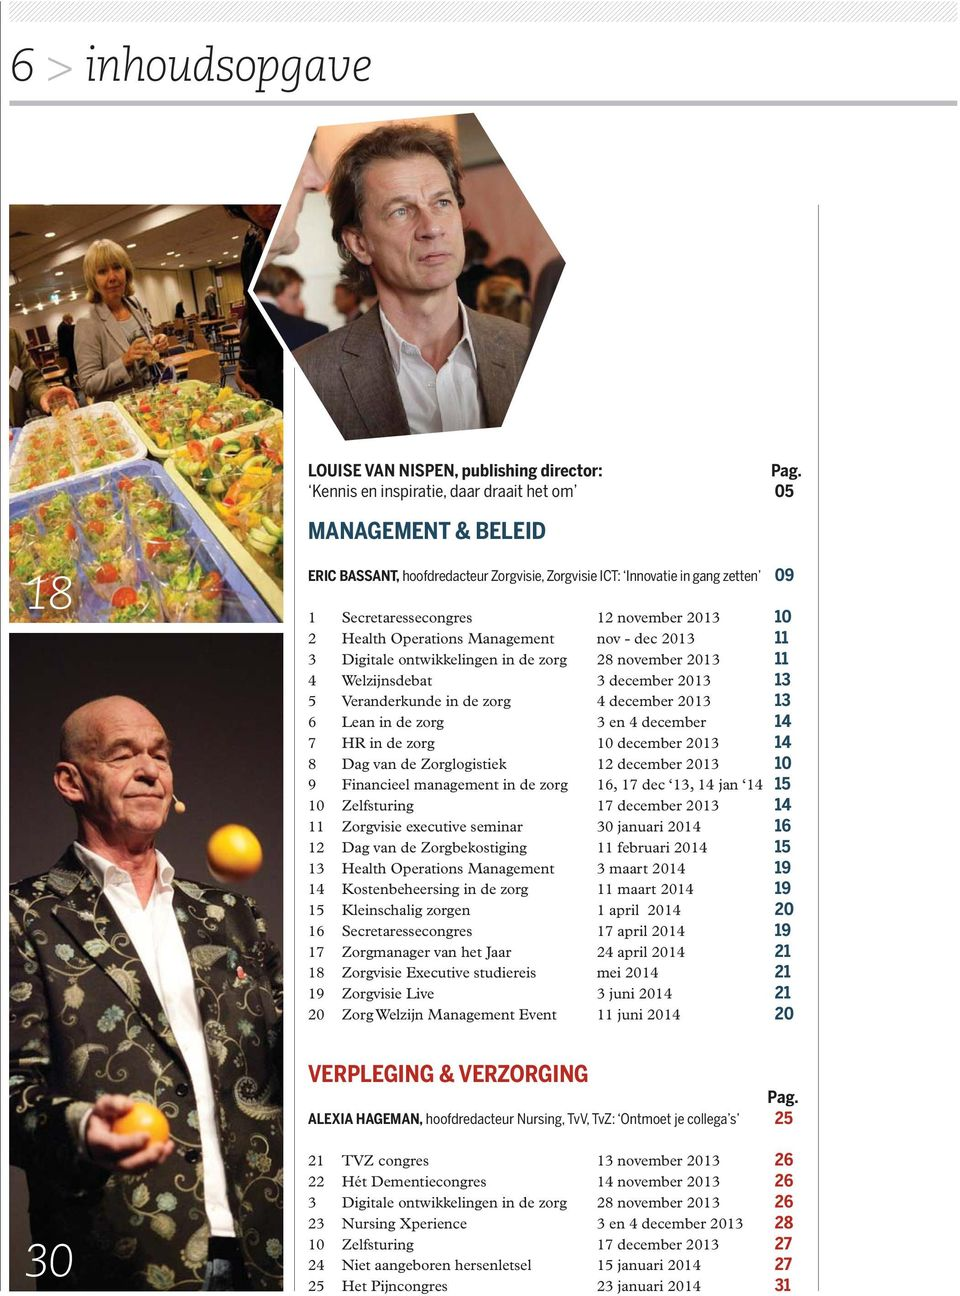 Health Operations Management nov - dec 2013 11 3 Digitale ontwikkelingen in de zorg 28 november 2013 11 4 Welzijnsdebat 3 december 2013 13 5 Veranderkunde in de zorg 4 december 2013 13 6 Lean in de